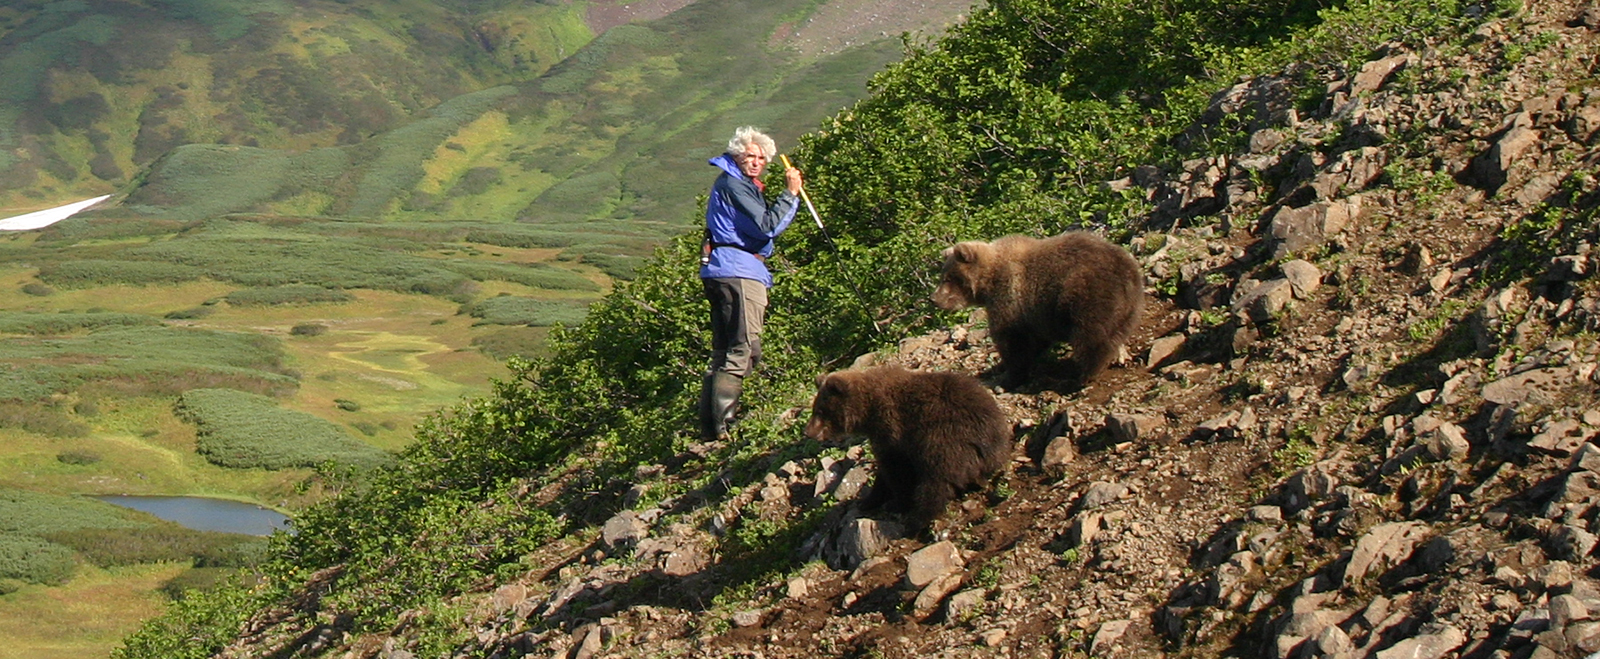 Talking With Bears (Preface)